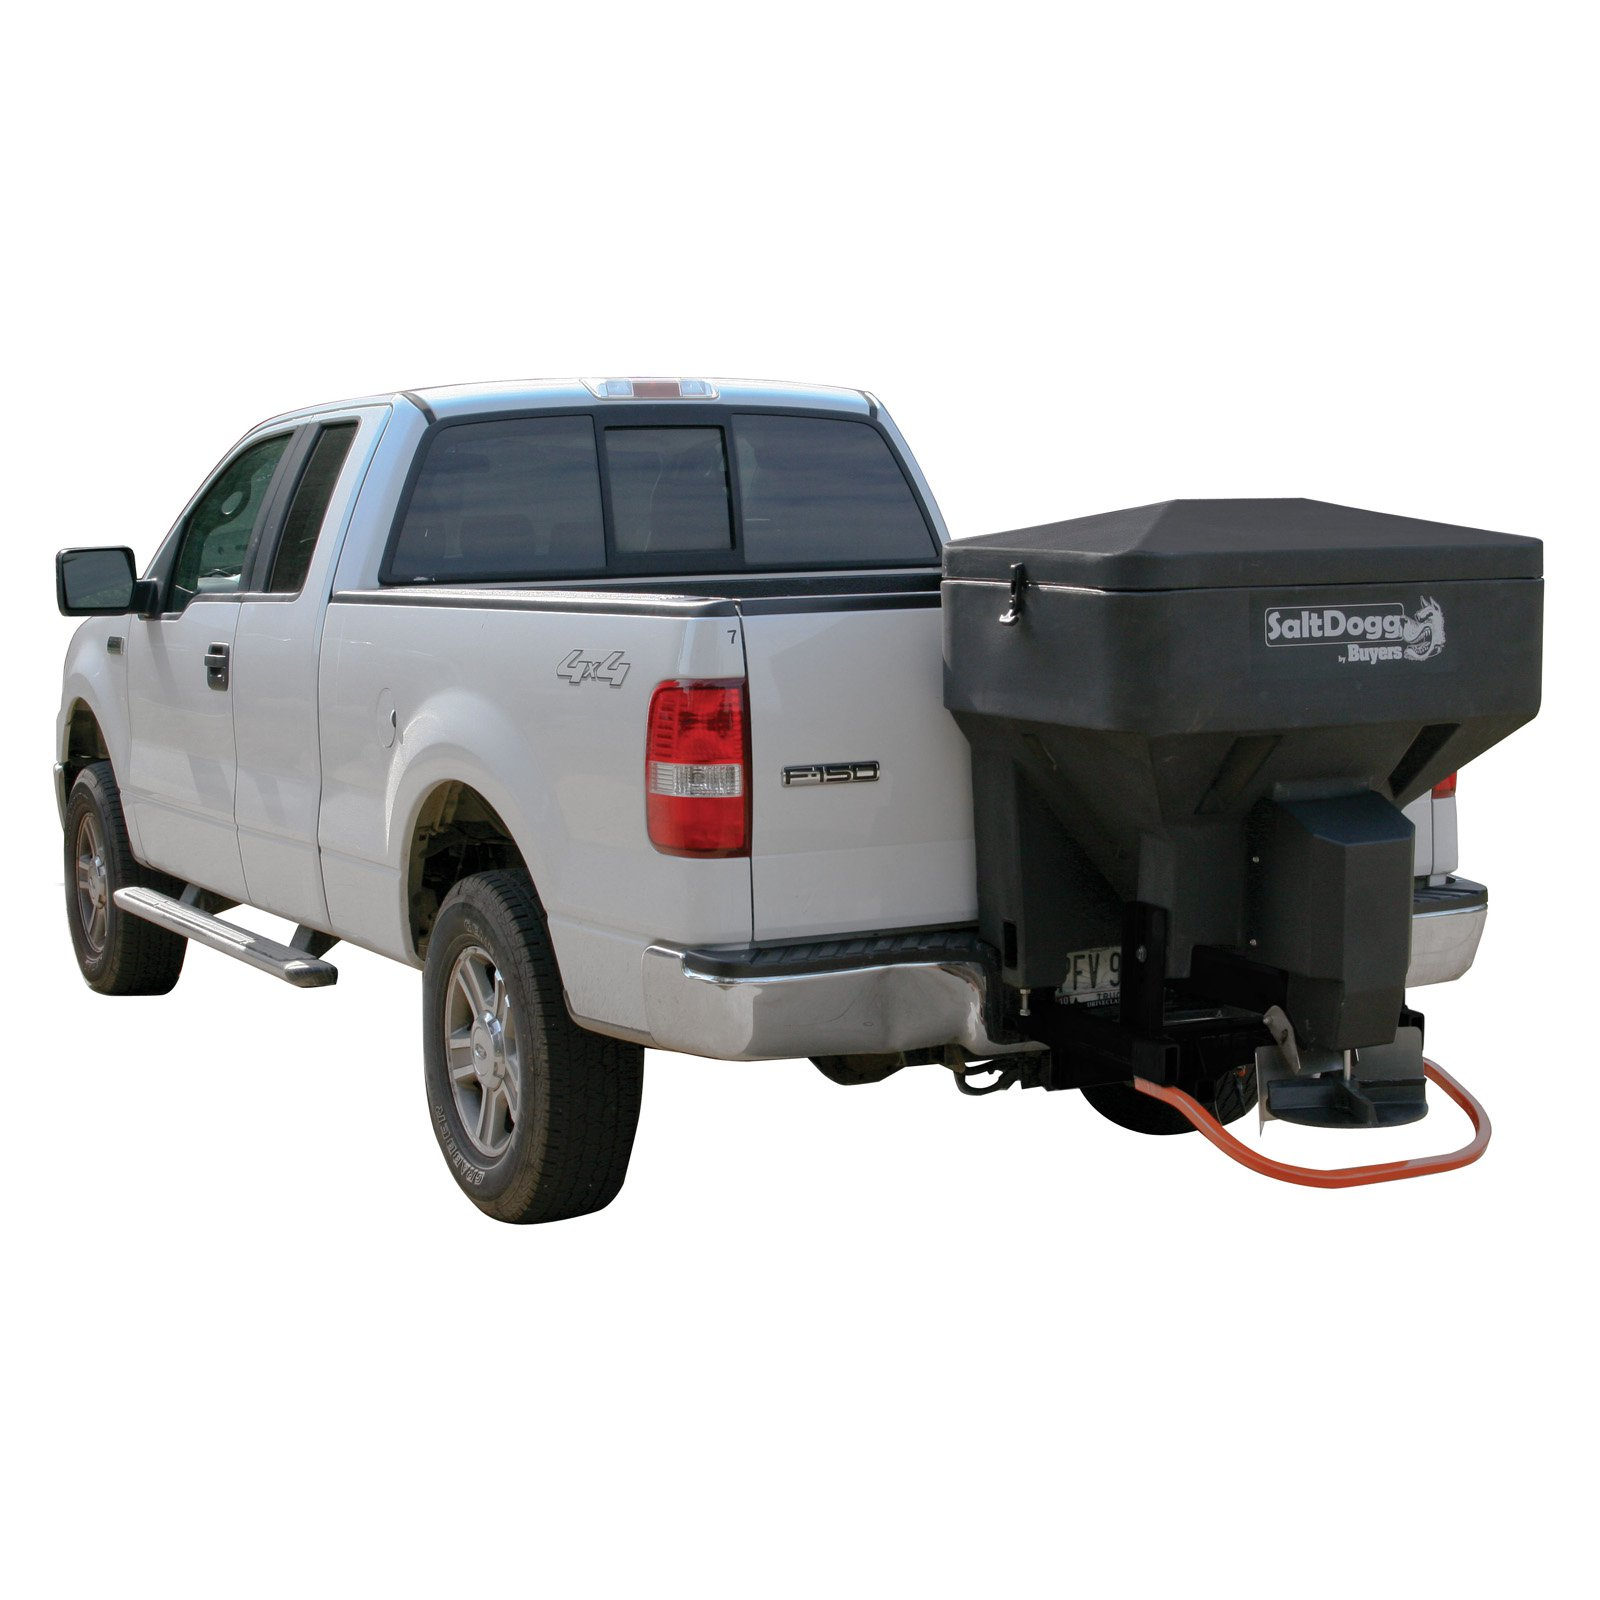 SaltDogg Electric Polymer 38-in. Tailgate Spreader by BUYERS PRODUCTS